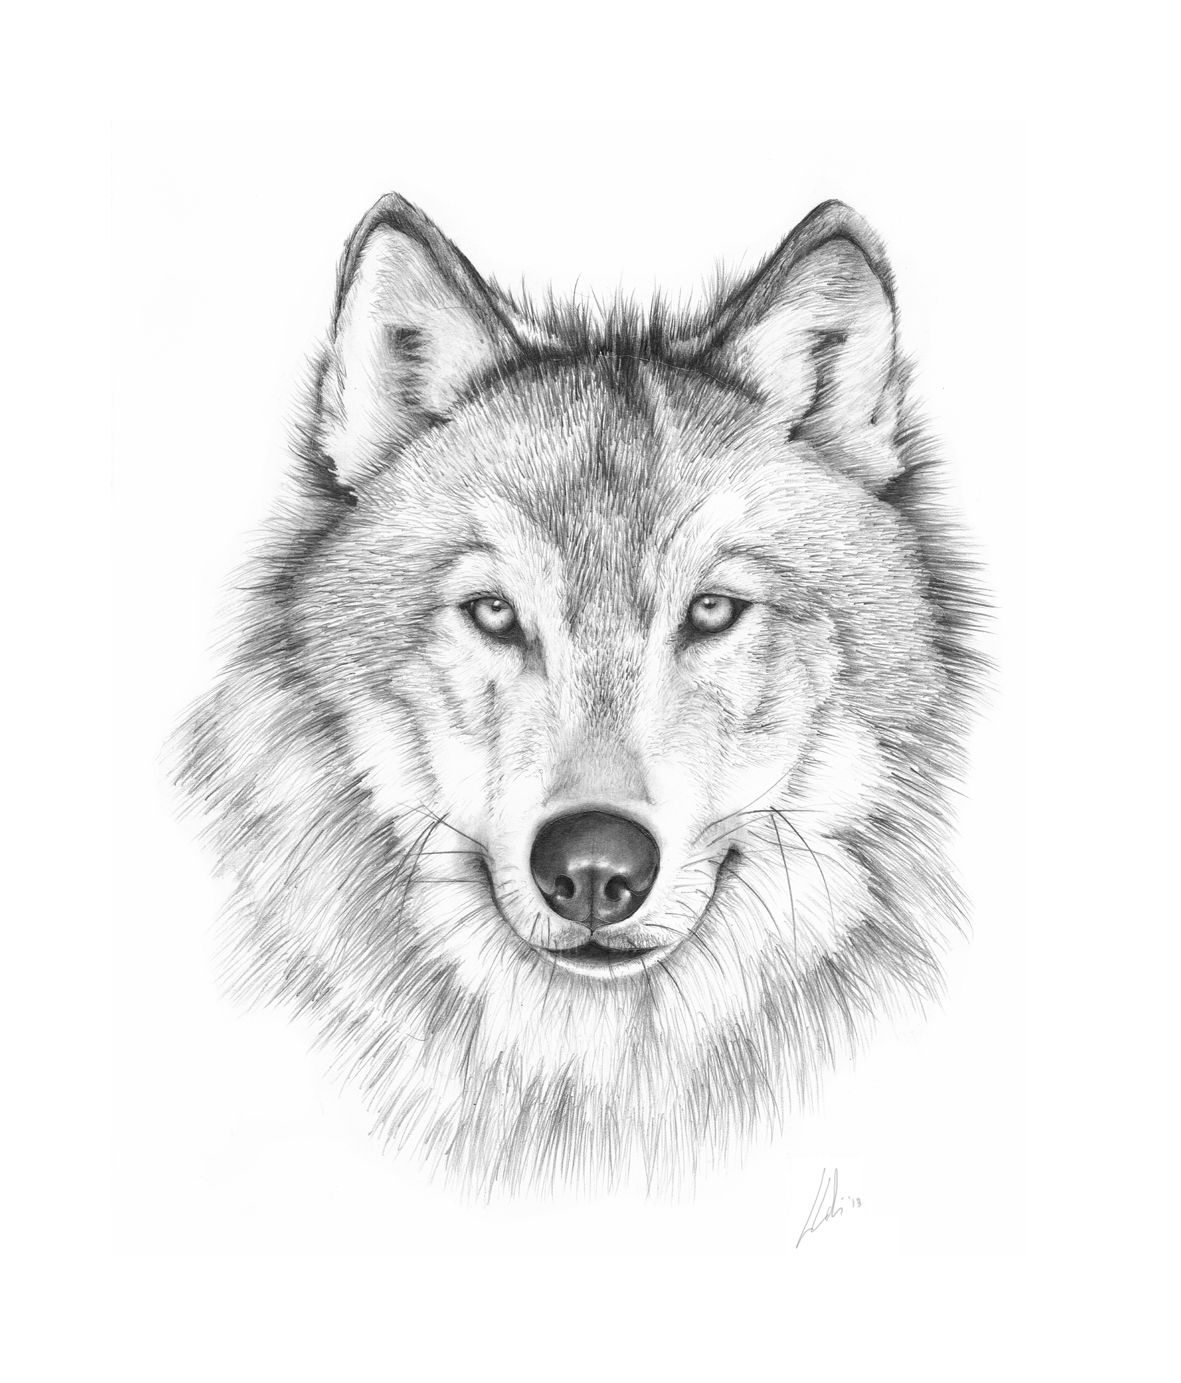 Wolves and writing nice synopsis of wolves in the news 2014